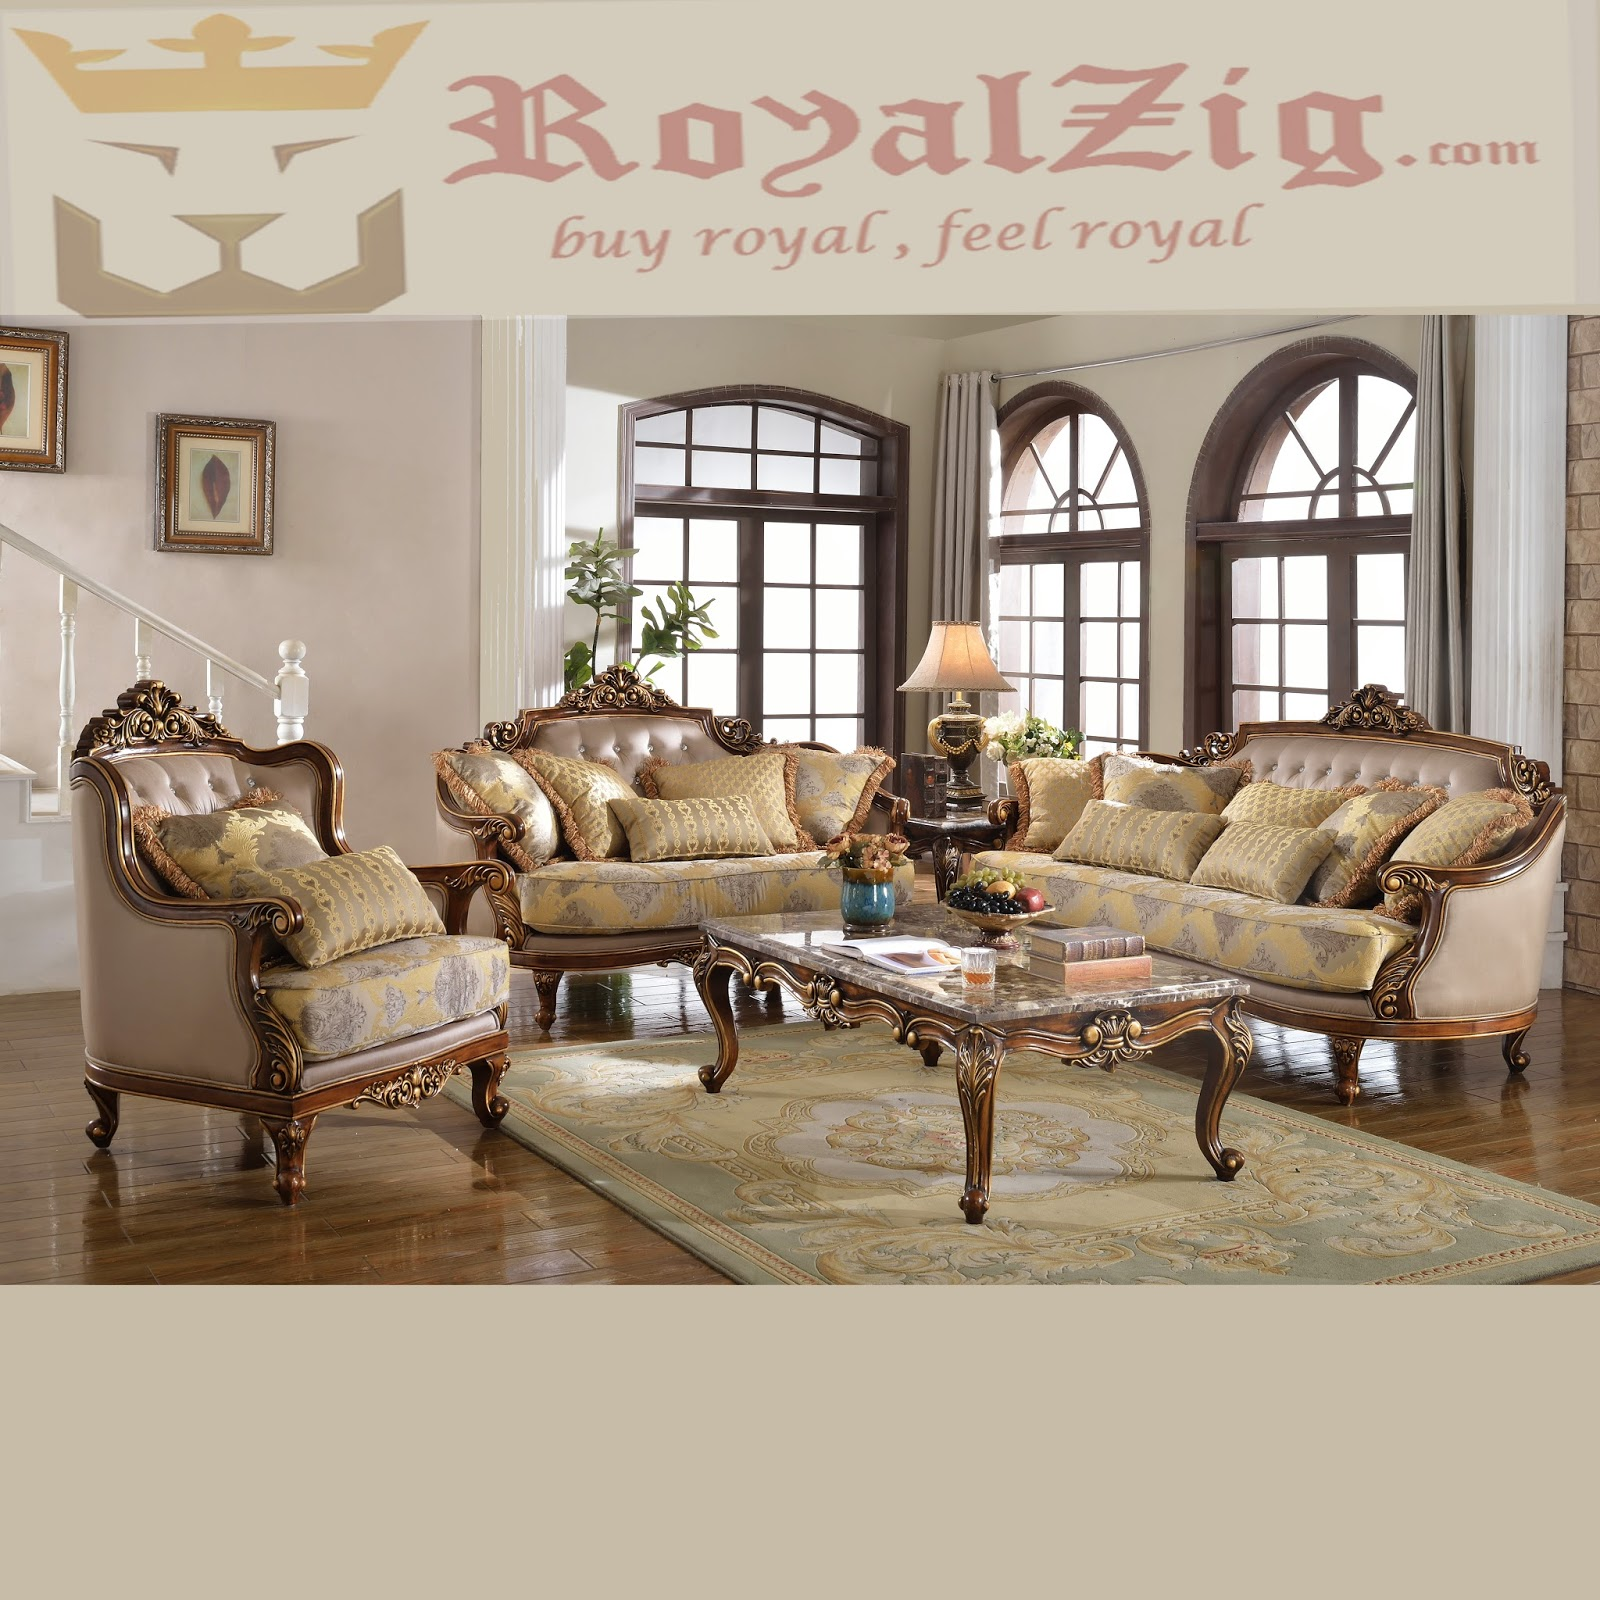 Royalzig Indian Luxury And Hand Carved Furniture High